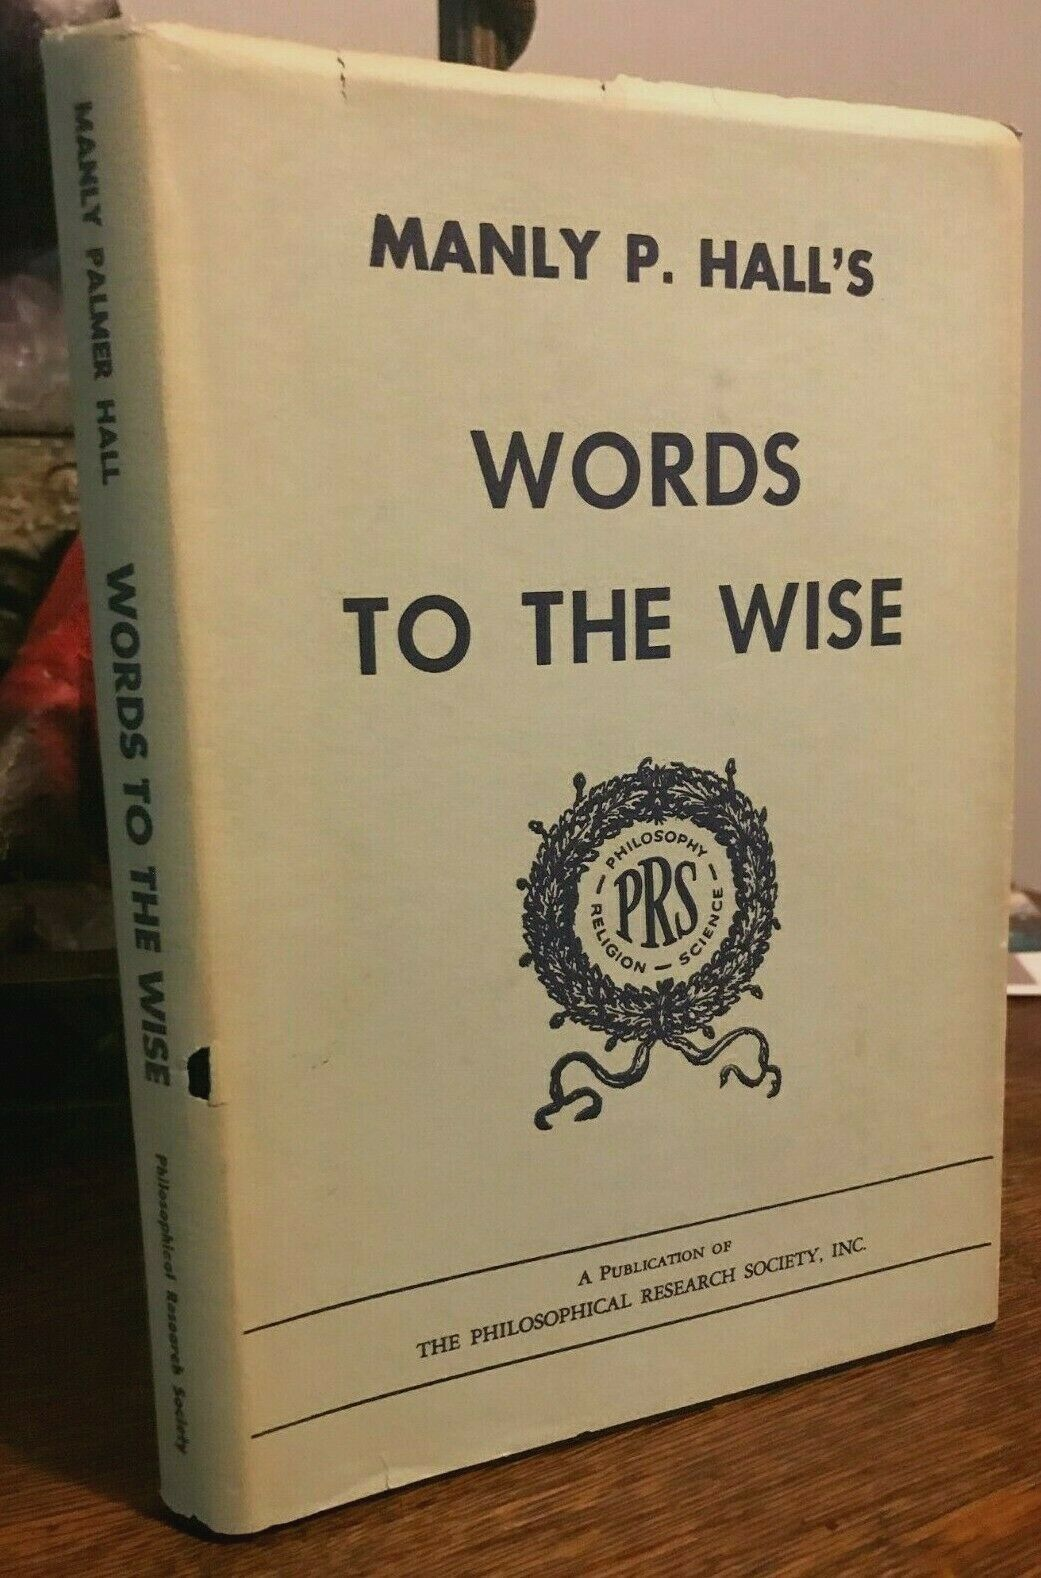 MANLY P. HALL'S WORDS TO THE WISE - 1963 ESOTERIC SCIENCES MYSTERY SCHOOLS